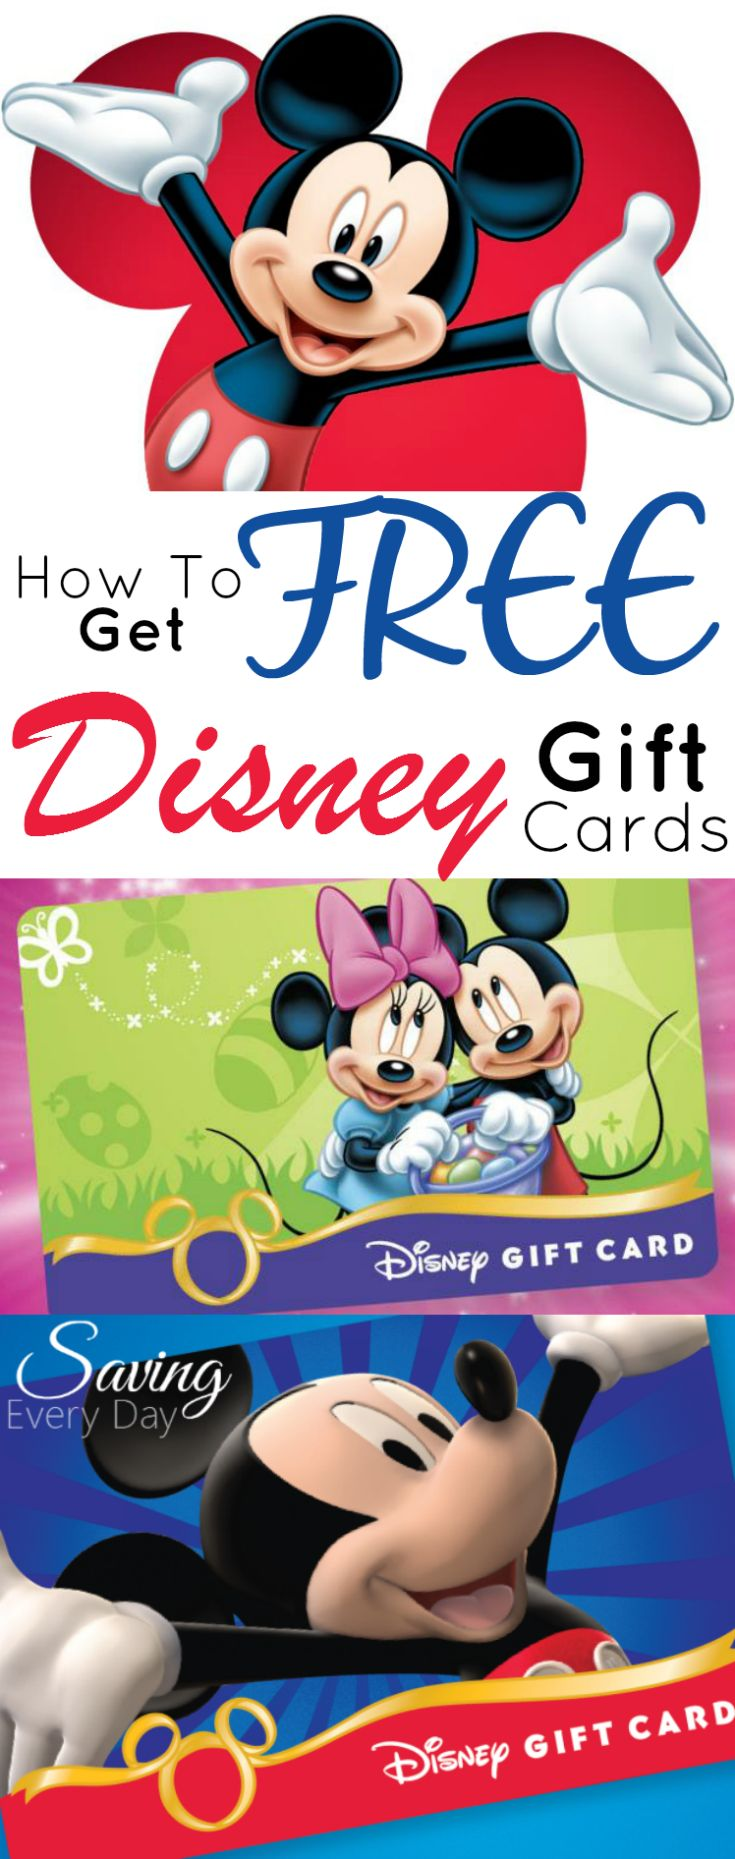 Best 25+ Disney gift ideas on Pinterest | Disney gift card, DIY ...